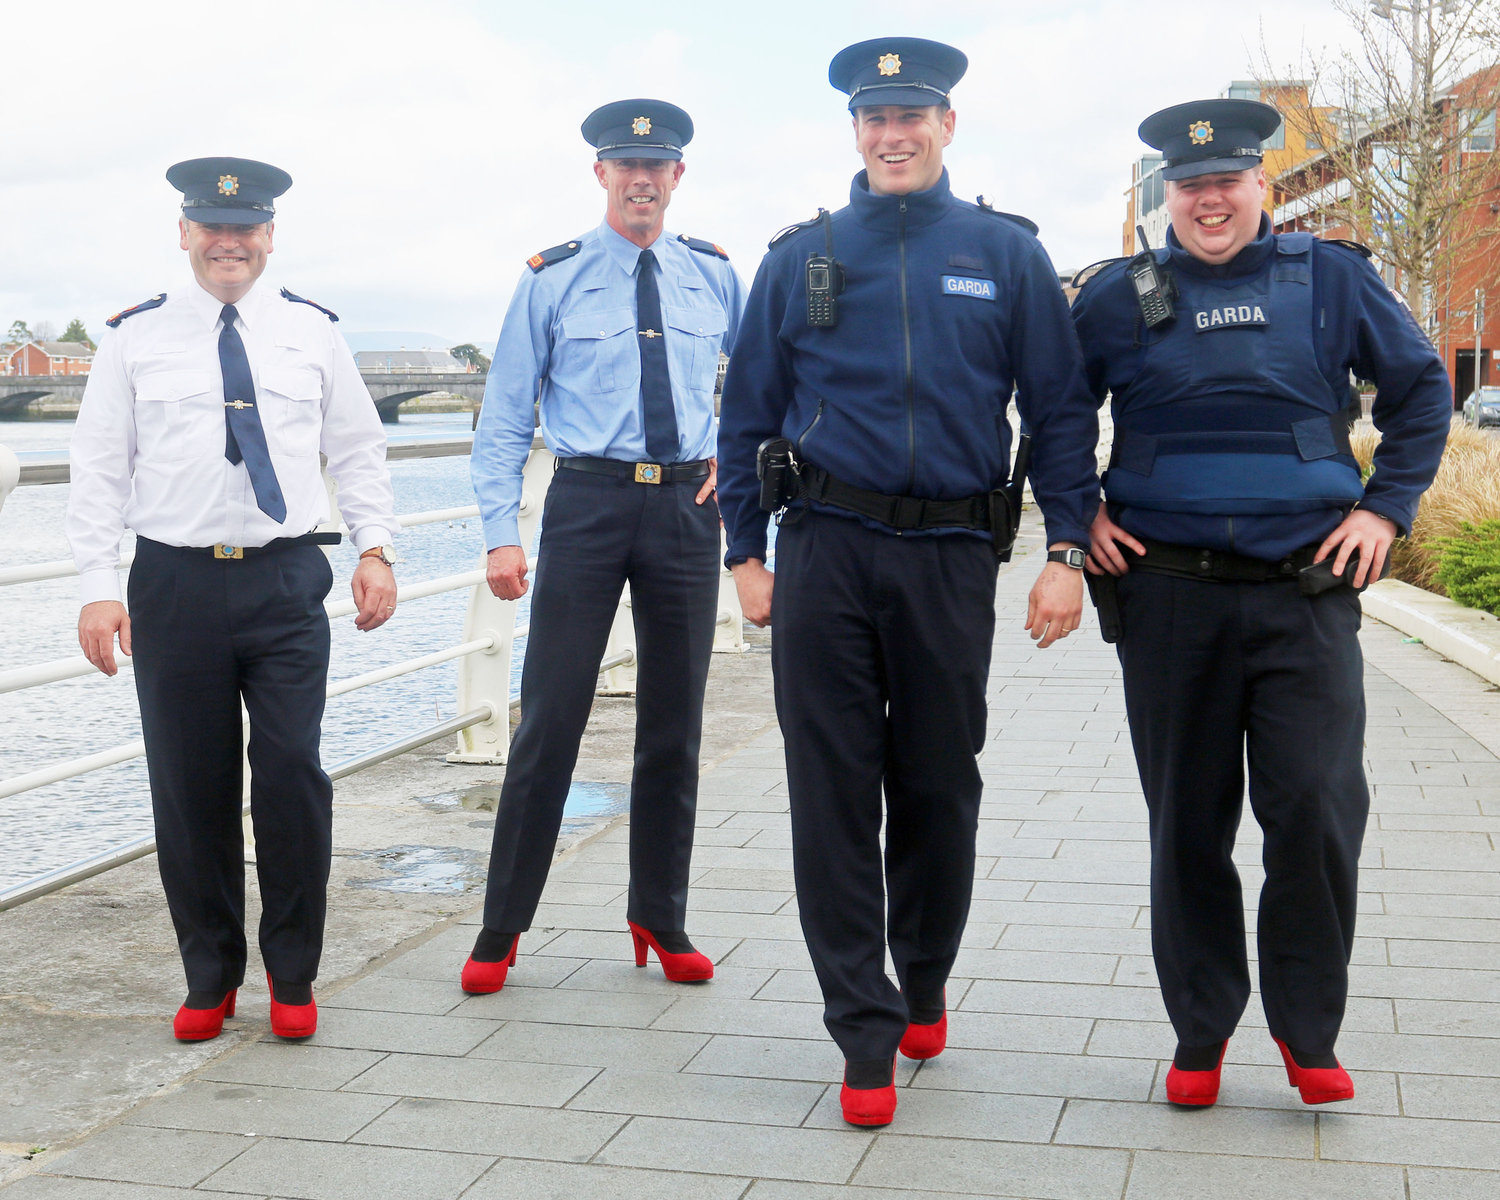 Walk In Her Shoes 2017